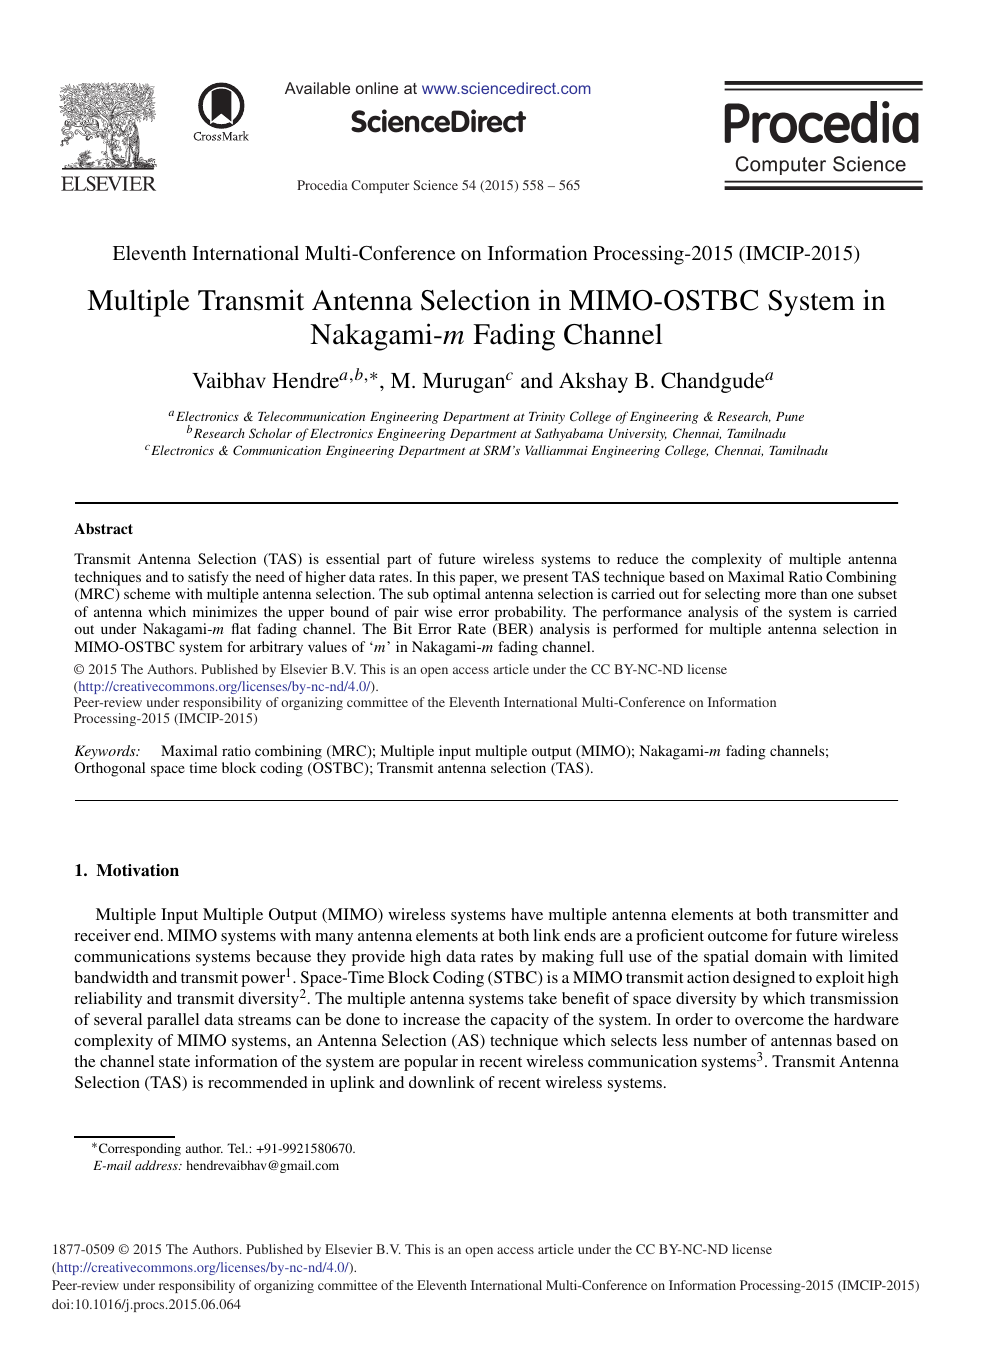 Multiple Transmit Antenna Selection in MIMO-OSTBC System in